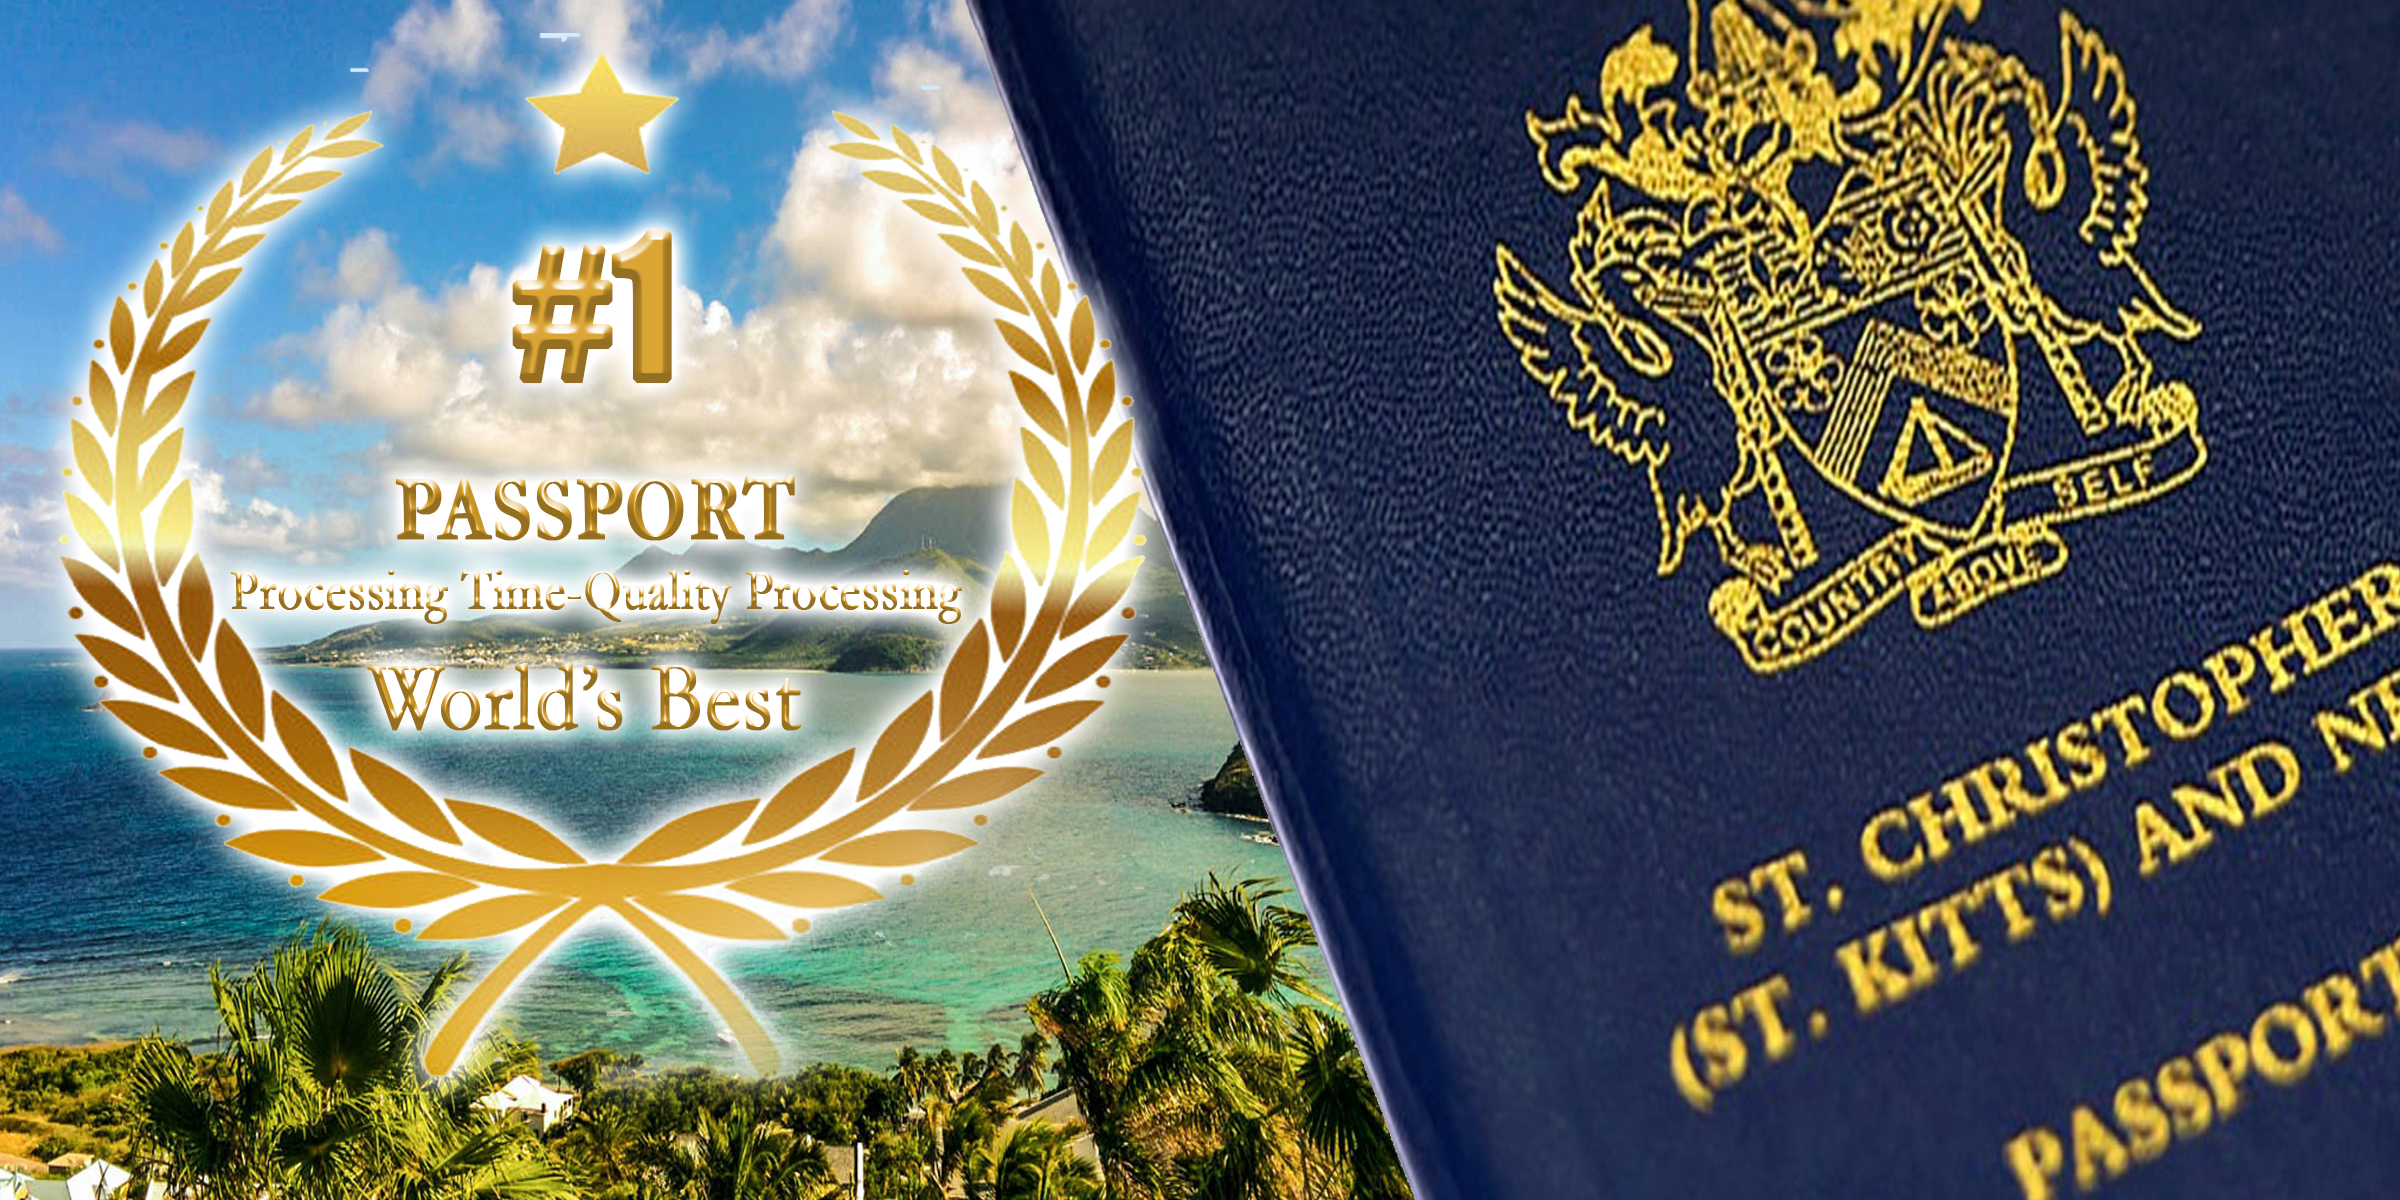 an award for st kitts and nevis quality time processing